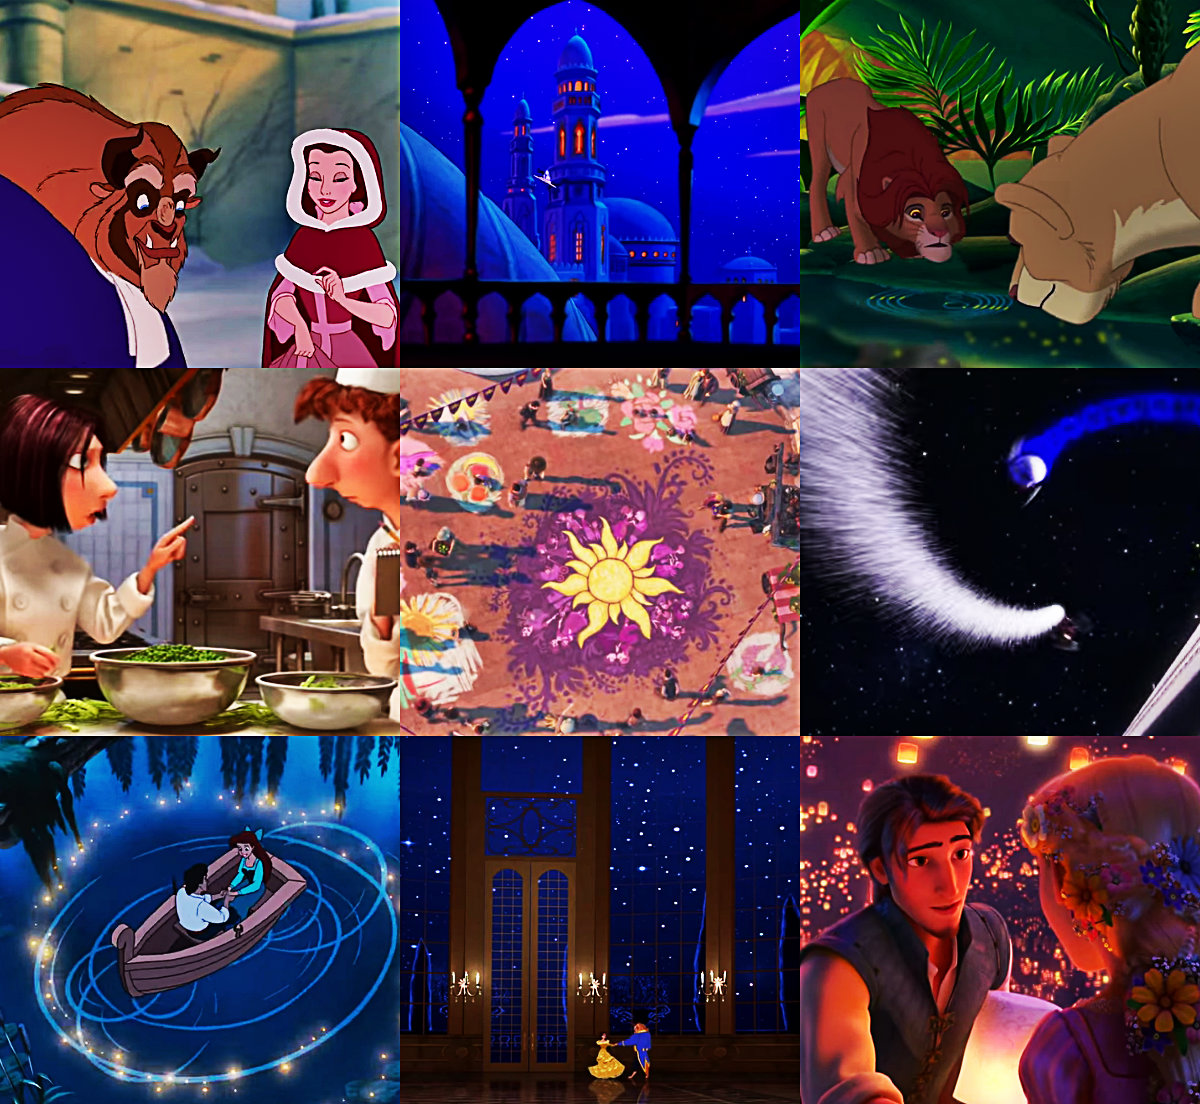 The Dreamy Disney and Pixar Dates